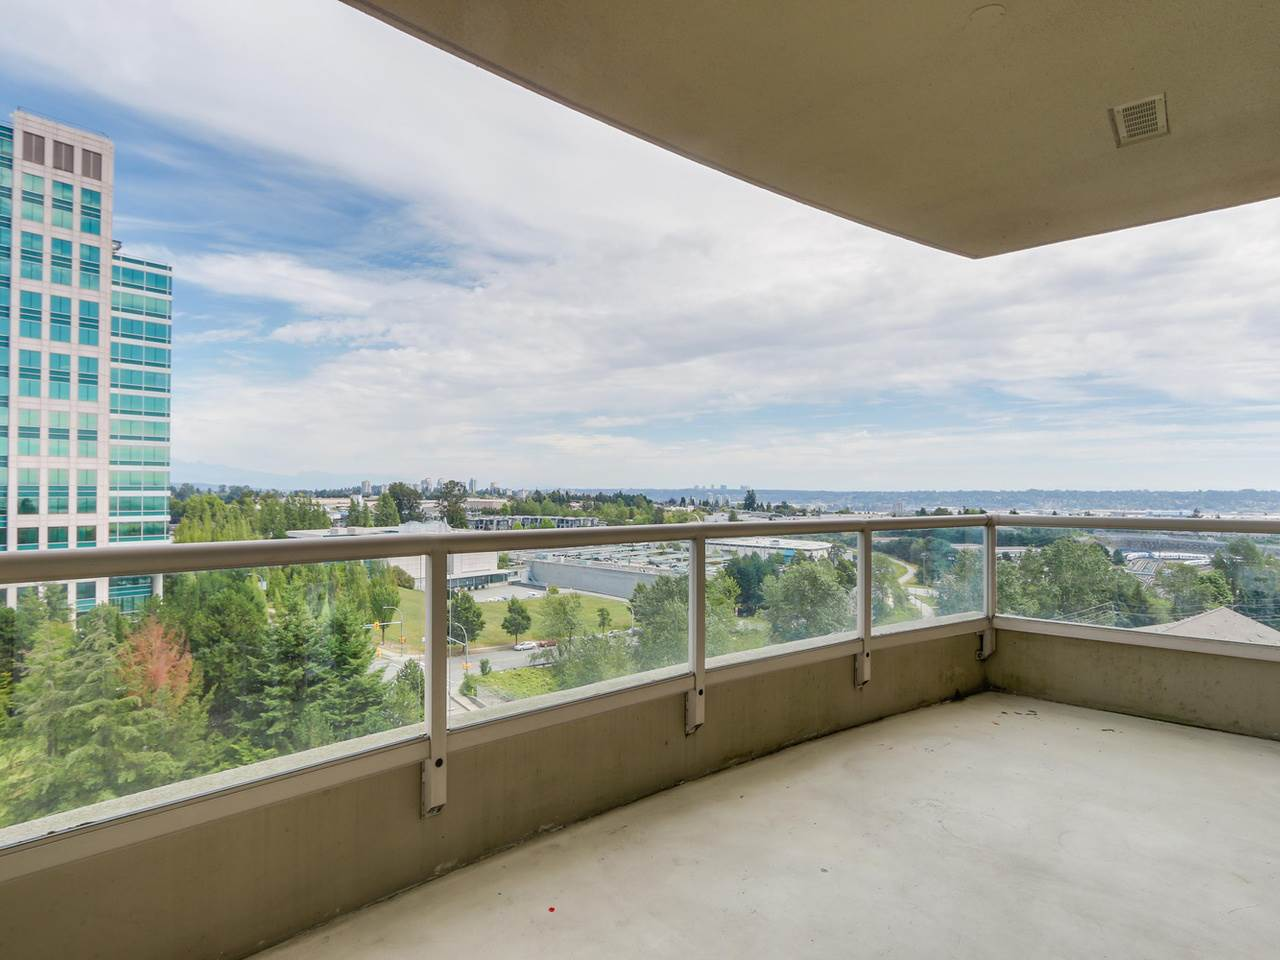 Photo 9: 1005 6888 STATION HILL Drive in Burnaby: South Slope Condo for sale (Burnaby South)  : MLS® # R2125491